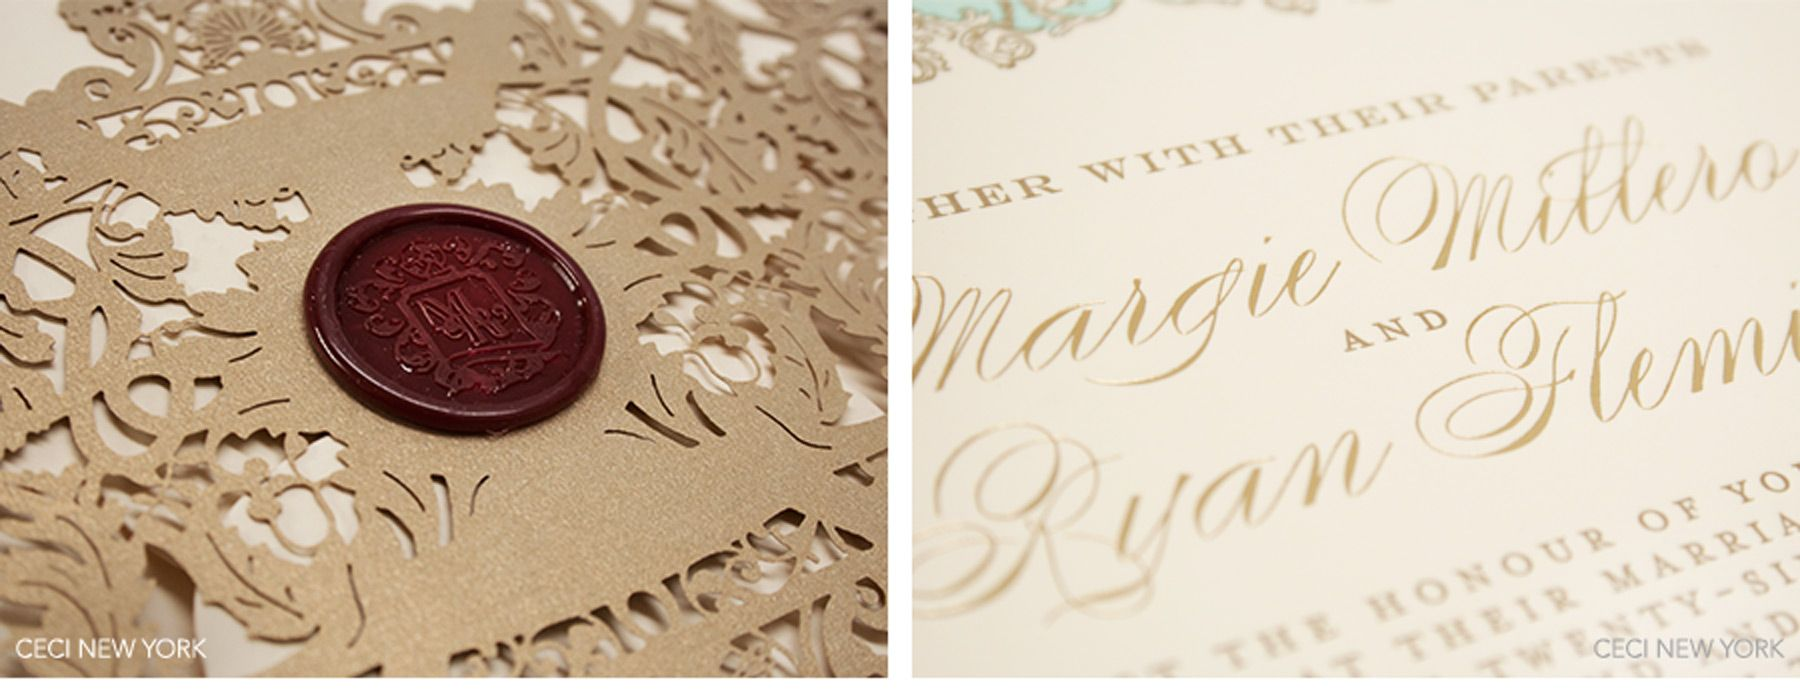 Luxury Wedding Invitations by Ceci New York Luxurious Lake Como